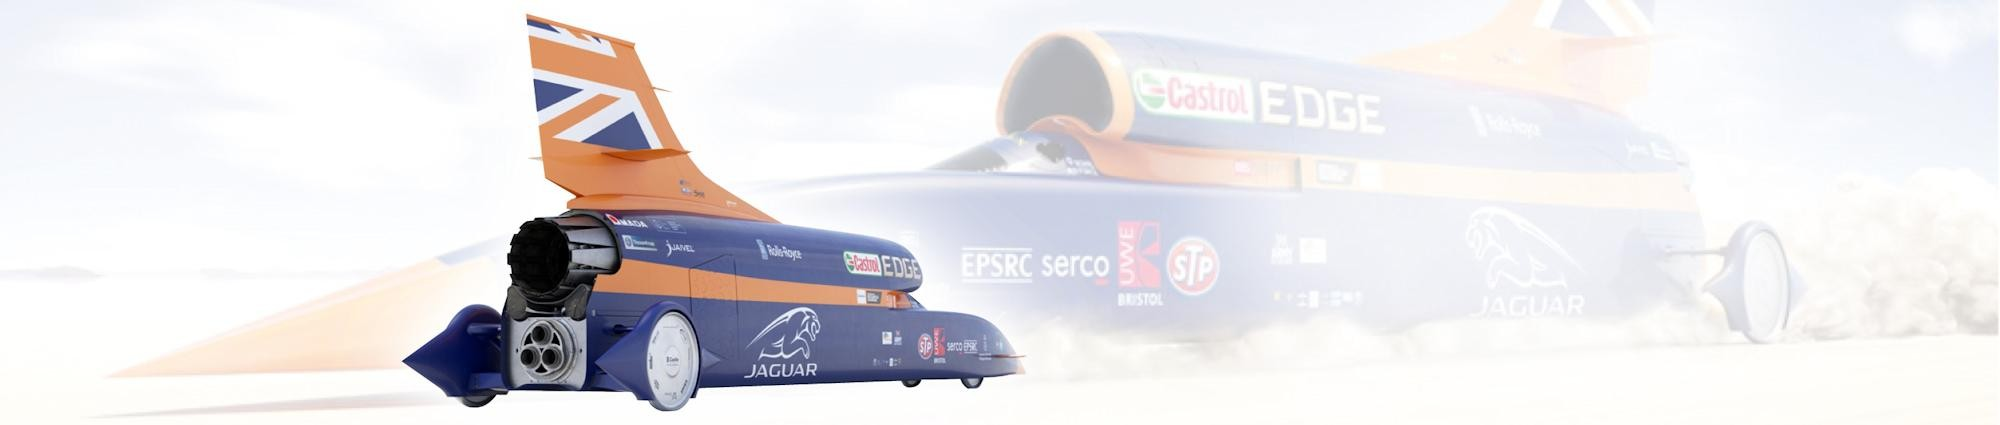 BLOODHOUND SSC Project